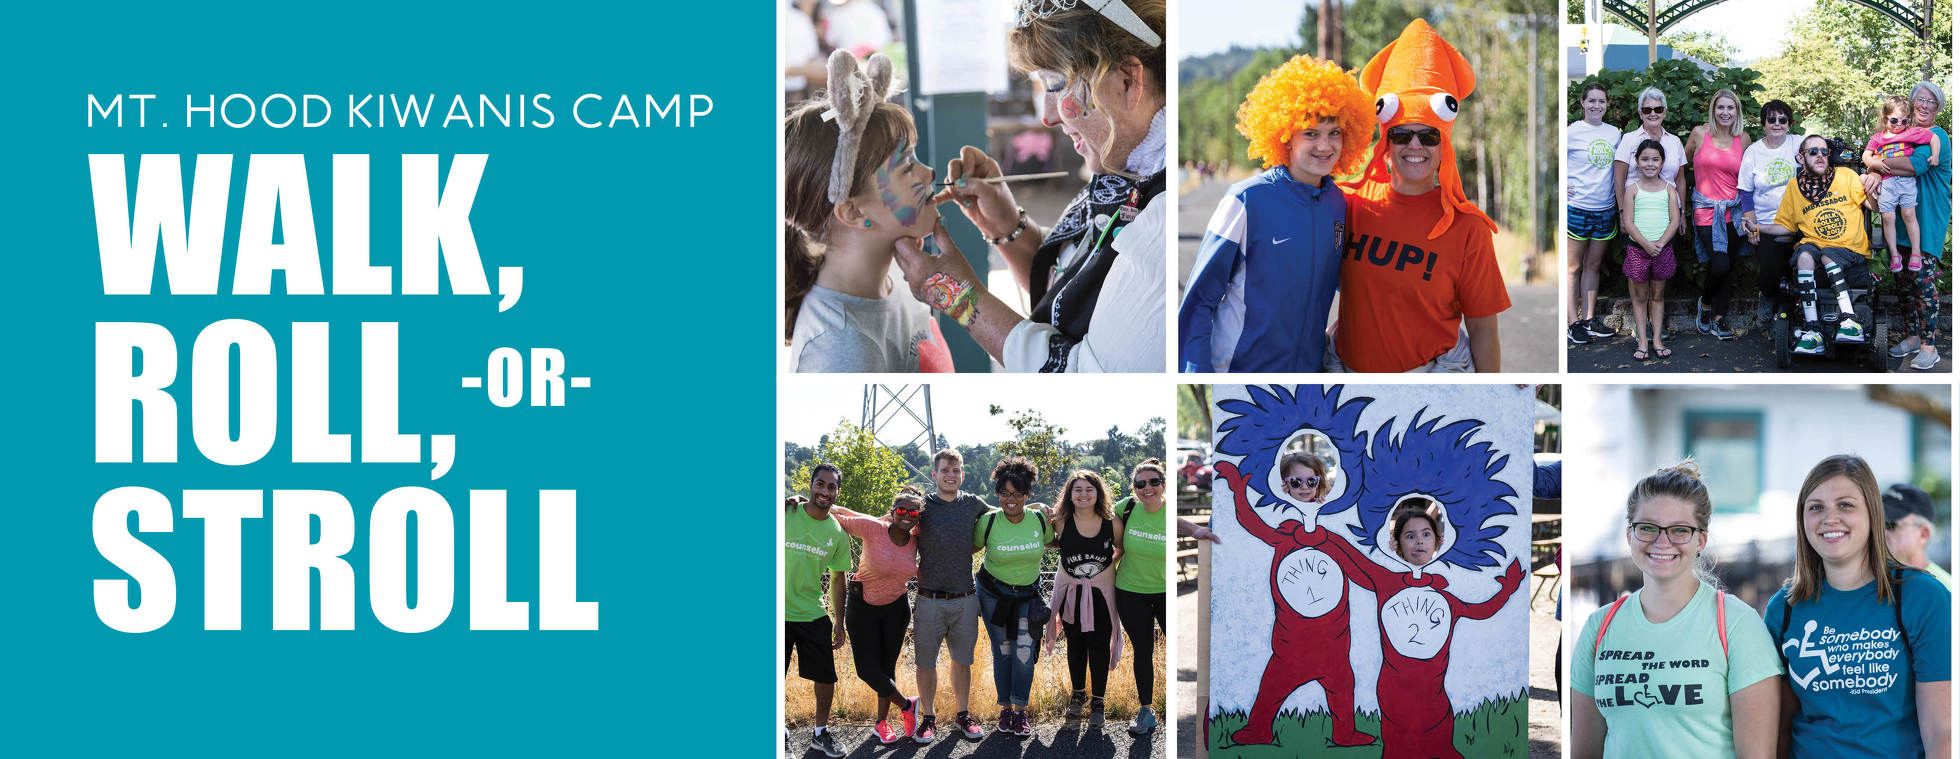 Mt. Hood Kiwanis Camp Walk, Roll, or Stroll